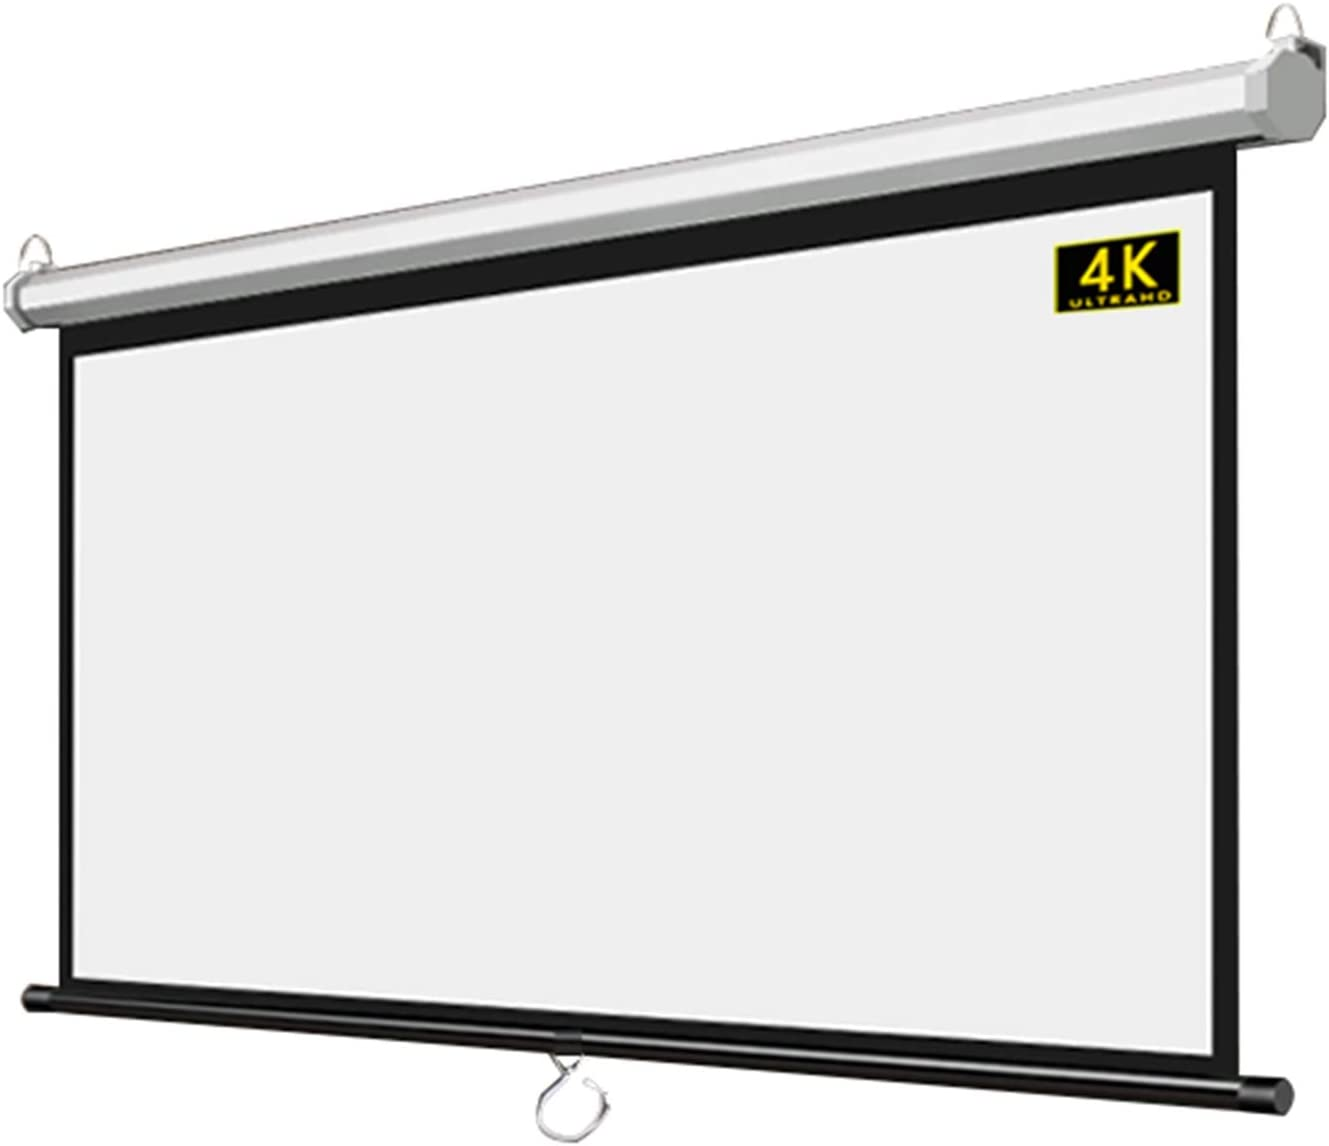 ALDS Projector Screen for Office Home Cinema Classroom Wall-Mounted Projection Screen Pull Down 60 in 4:3 HD Movie Screens Slow Retract Mechanism 116cm(W) x 87cm(H)